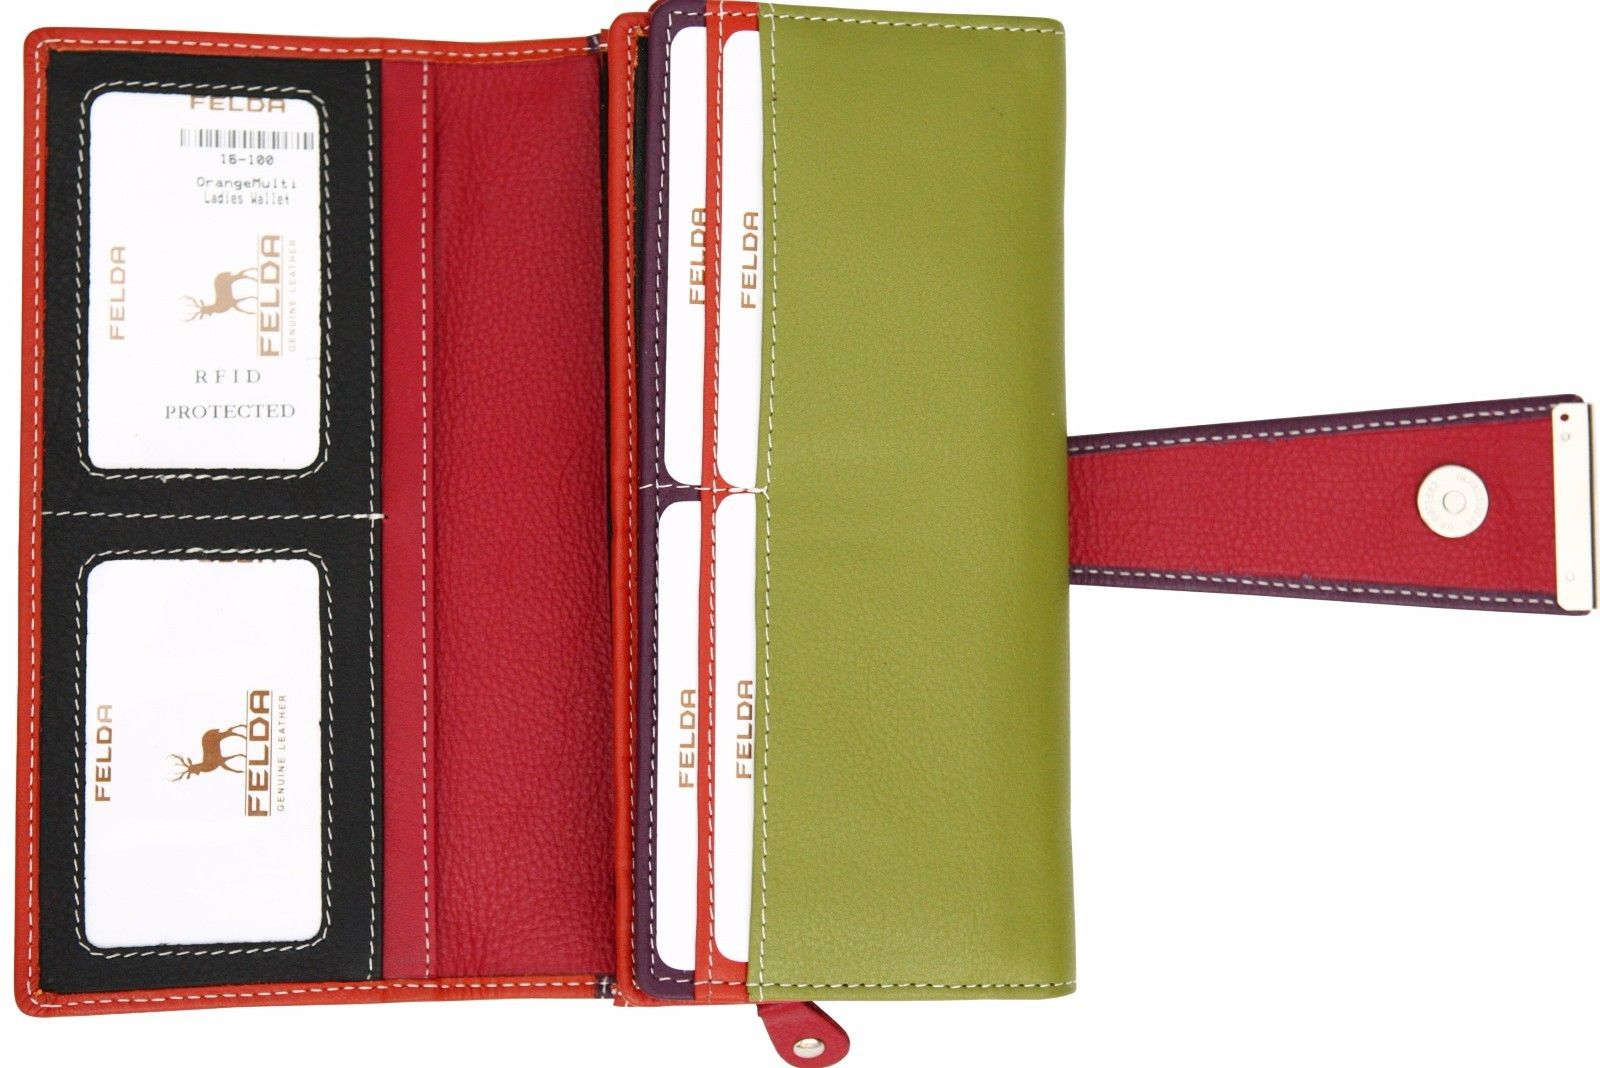 Felda-RFID-Ladies-Leather-Soft-Wallet-Large-Capacity-Purse-Womens-Multi-24-Card miniatuur 44